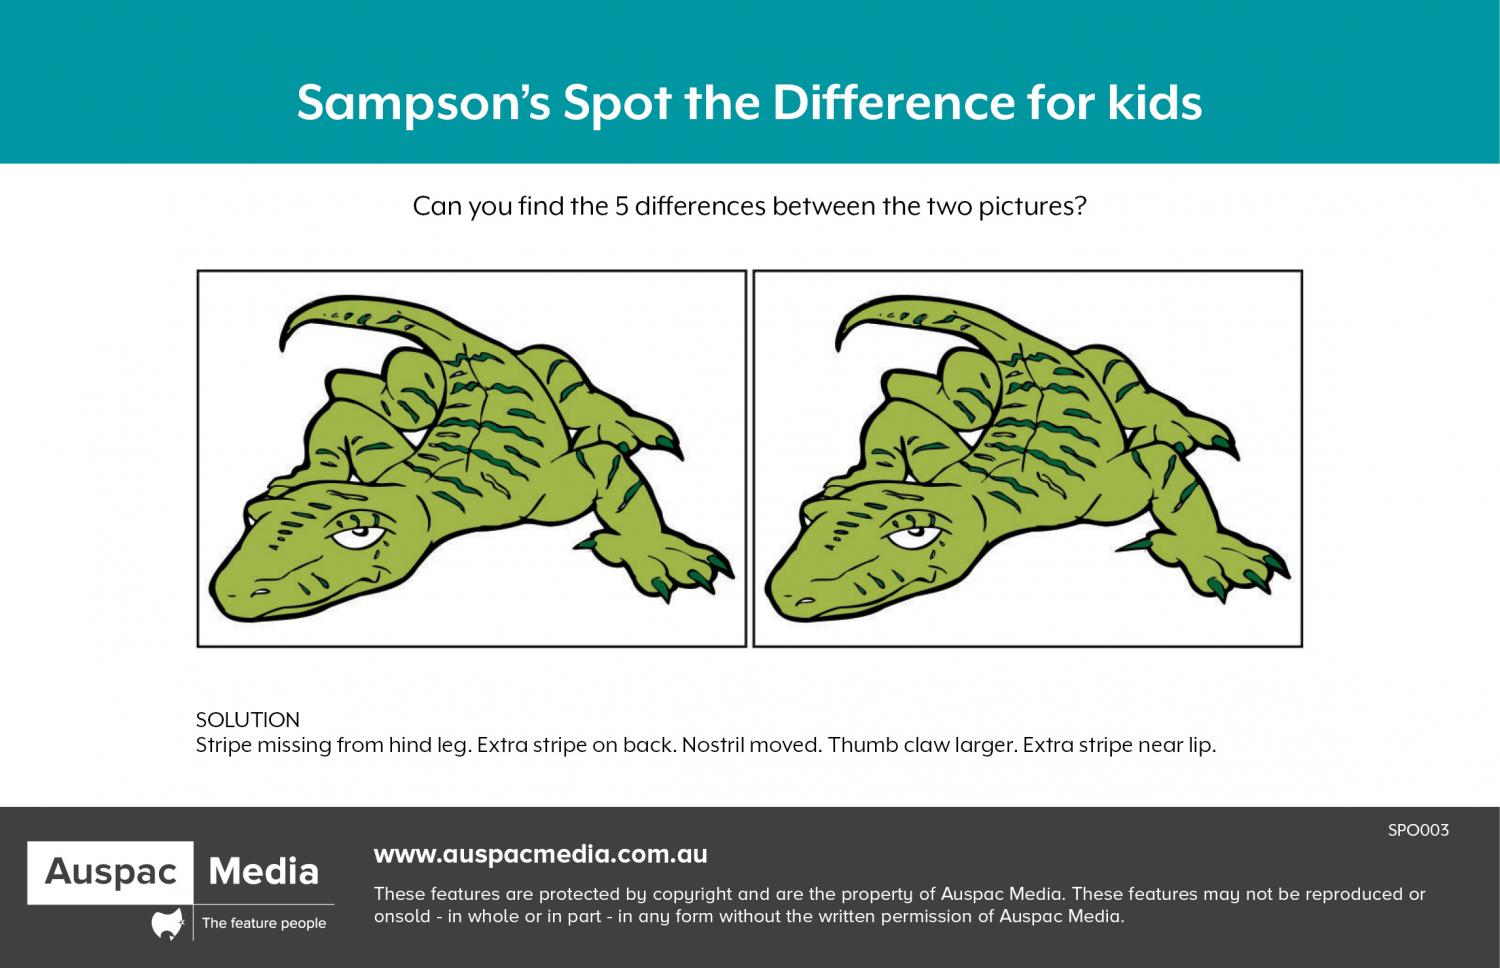 Thumbnail for Sampson's Spot the Difference for kids